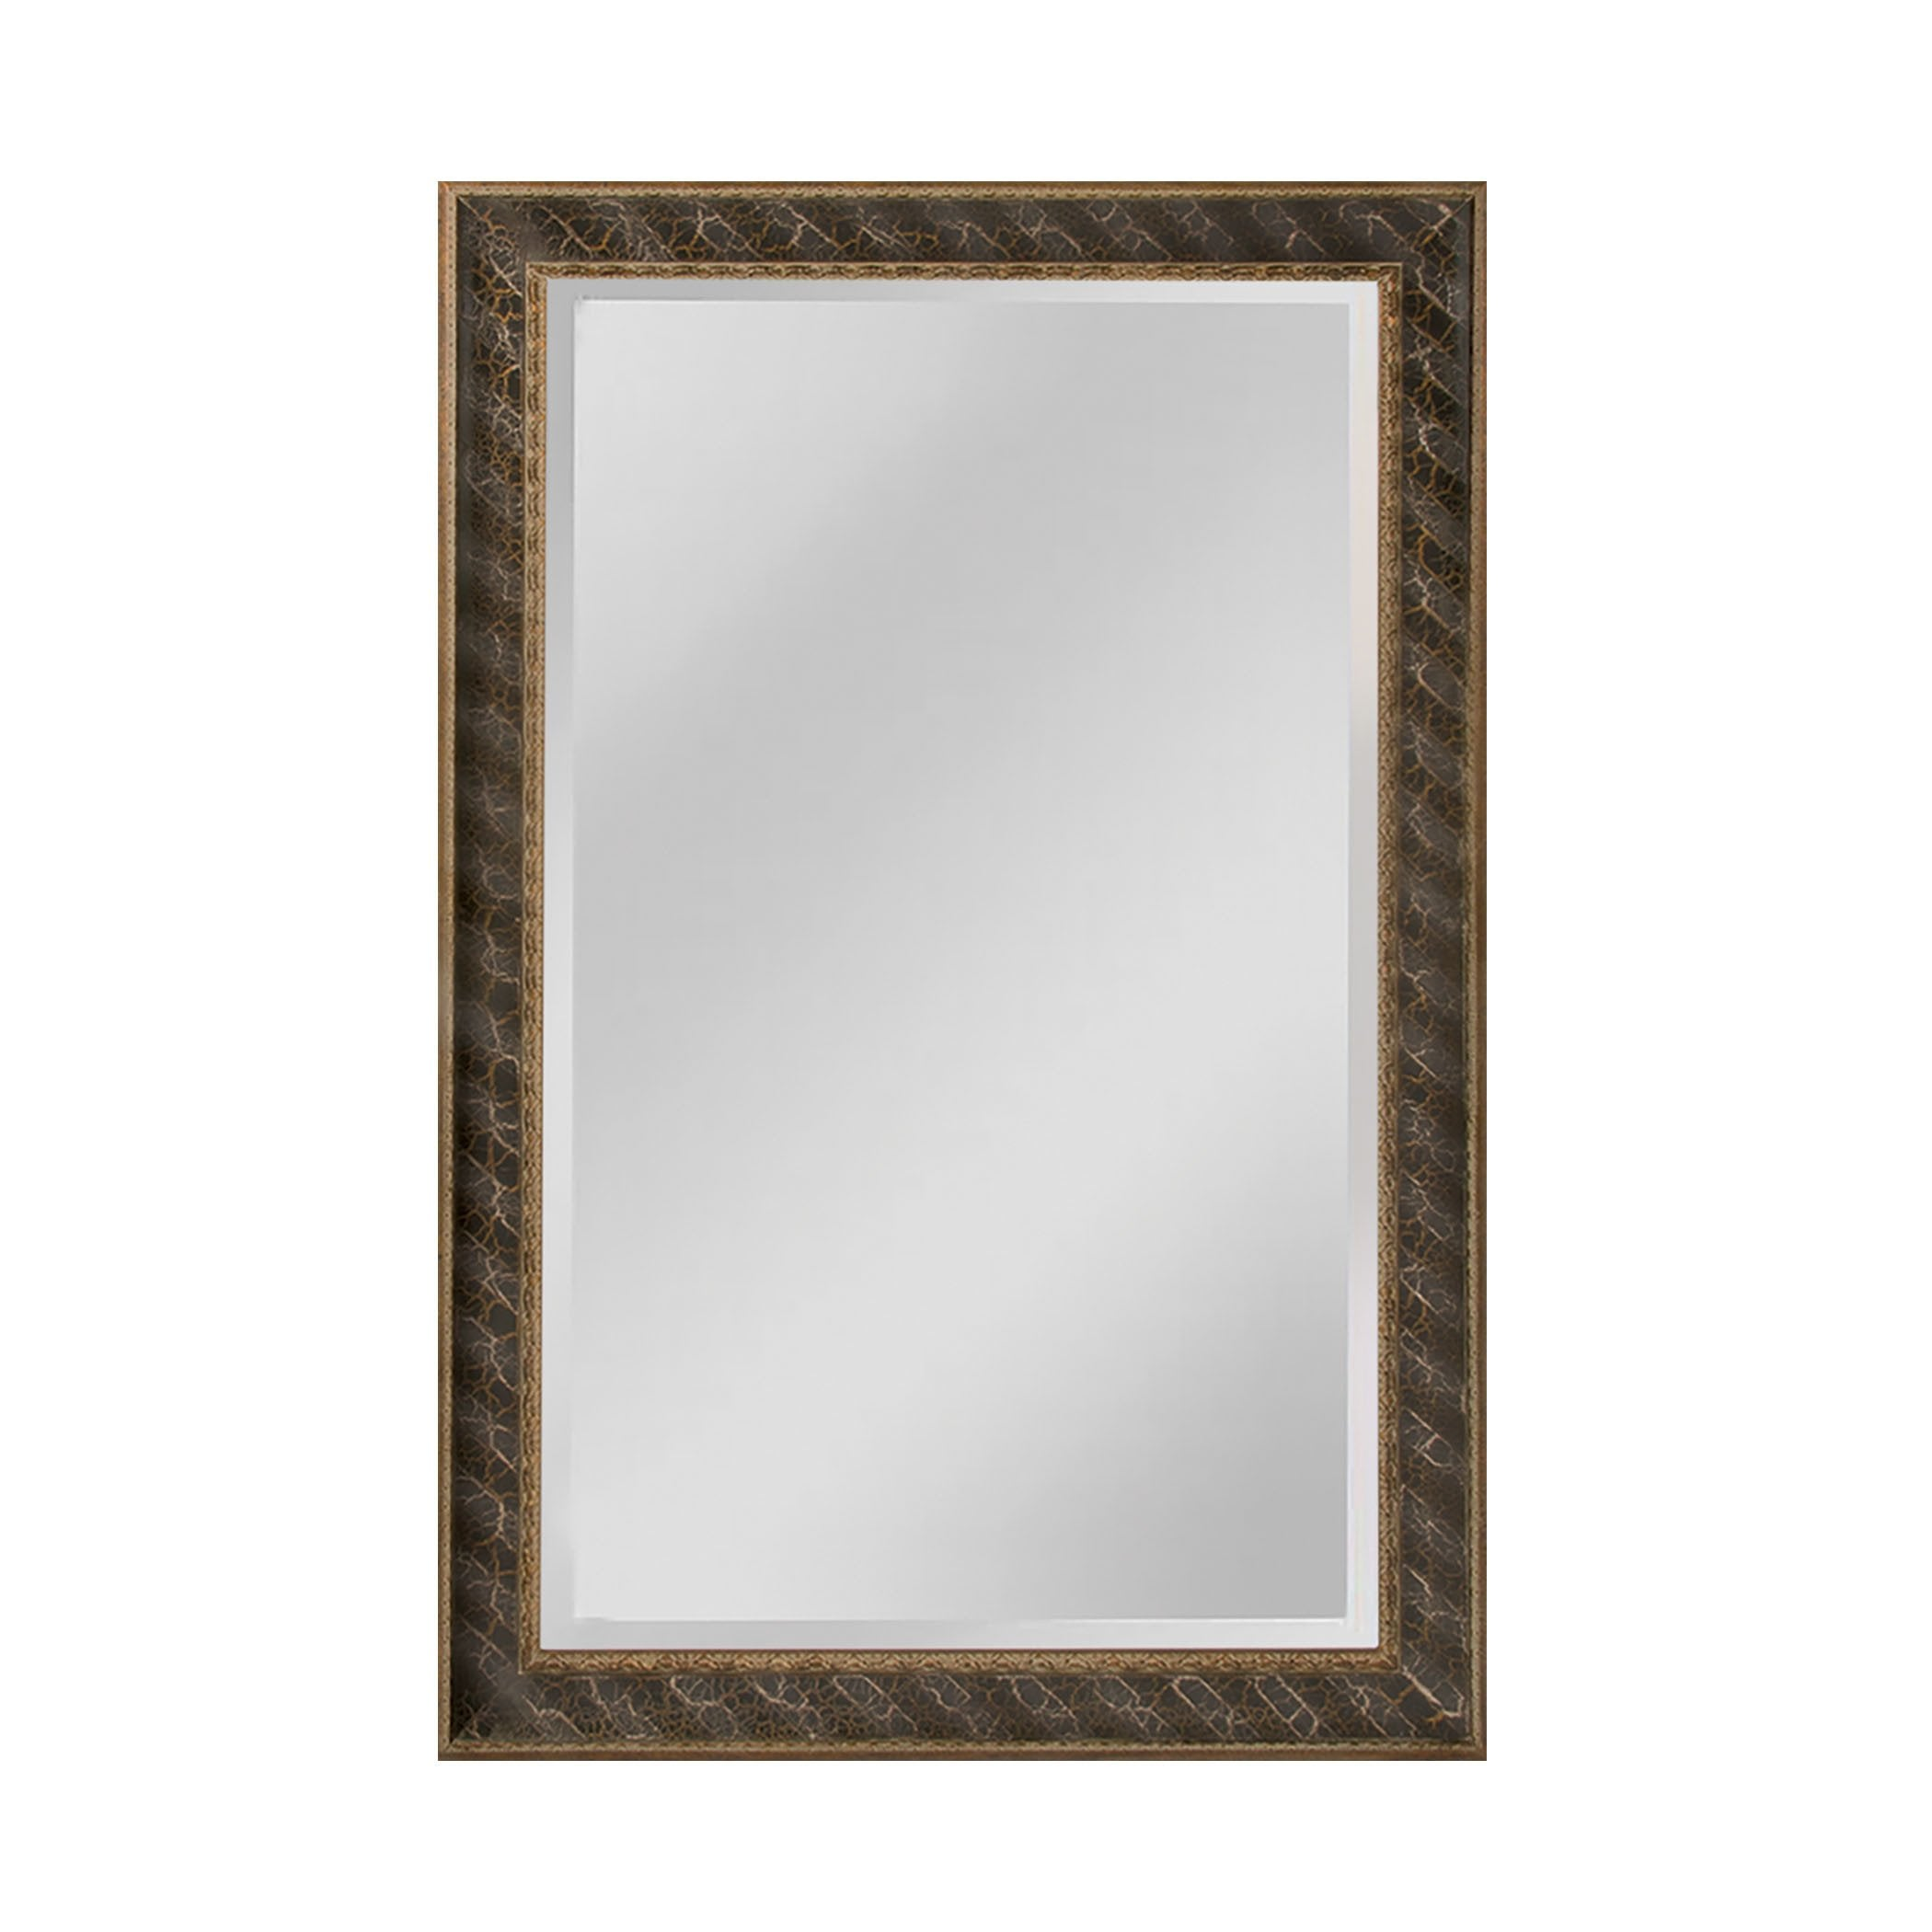 Collection | Antique | Mirror | Finish | Light | Wall